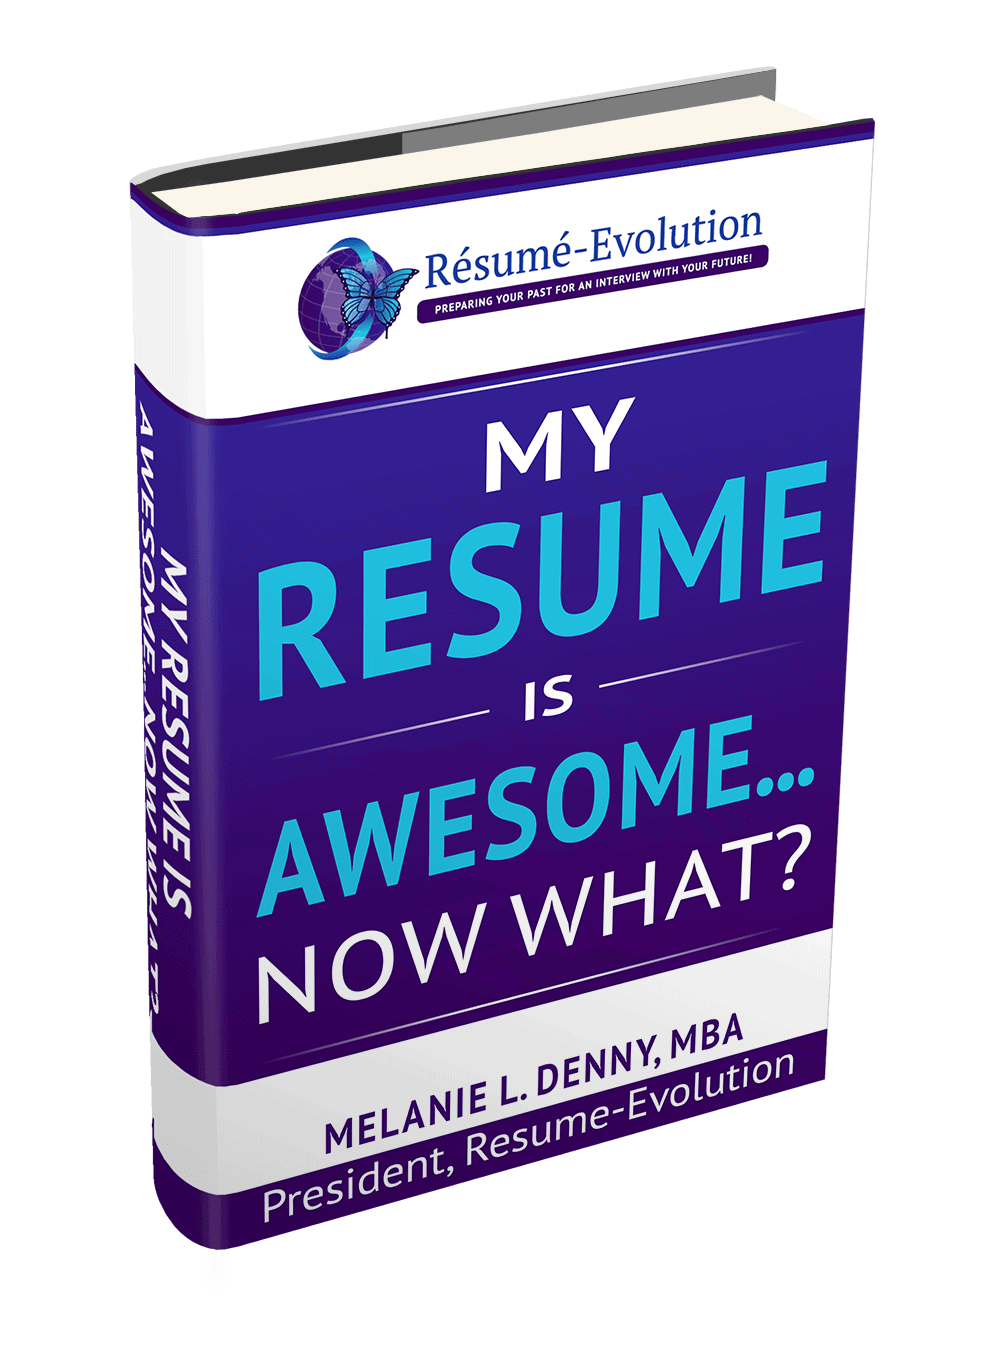 LinkedIn Profile Service Resume-Evolution